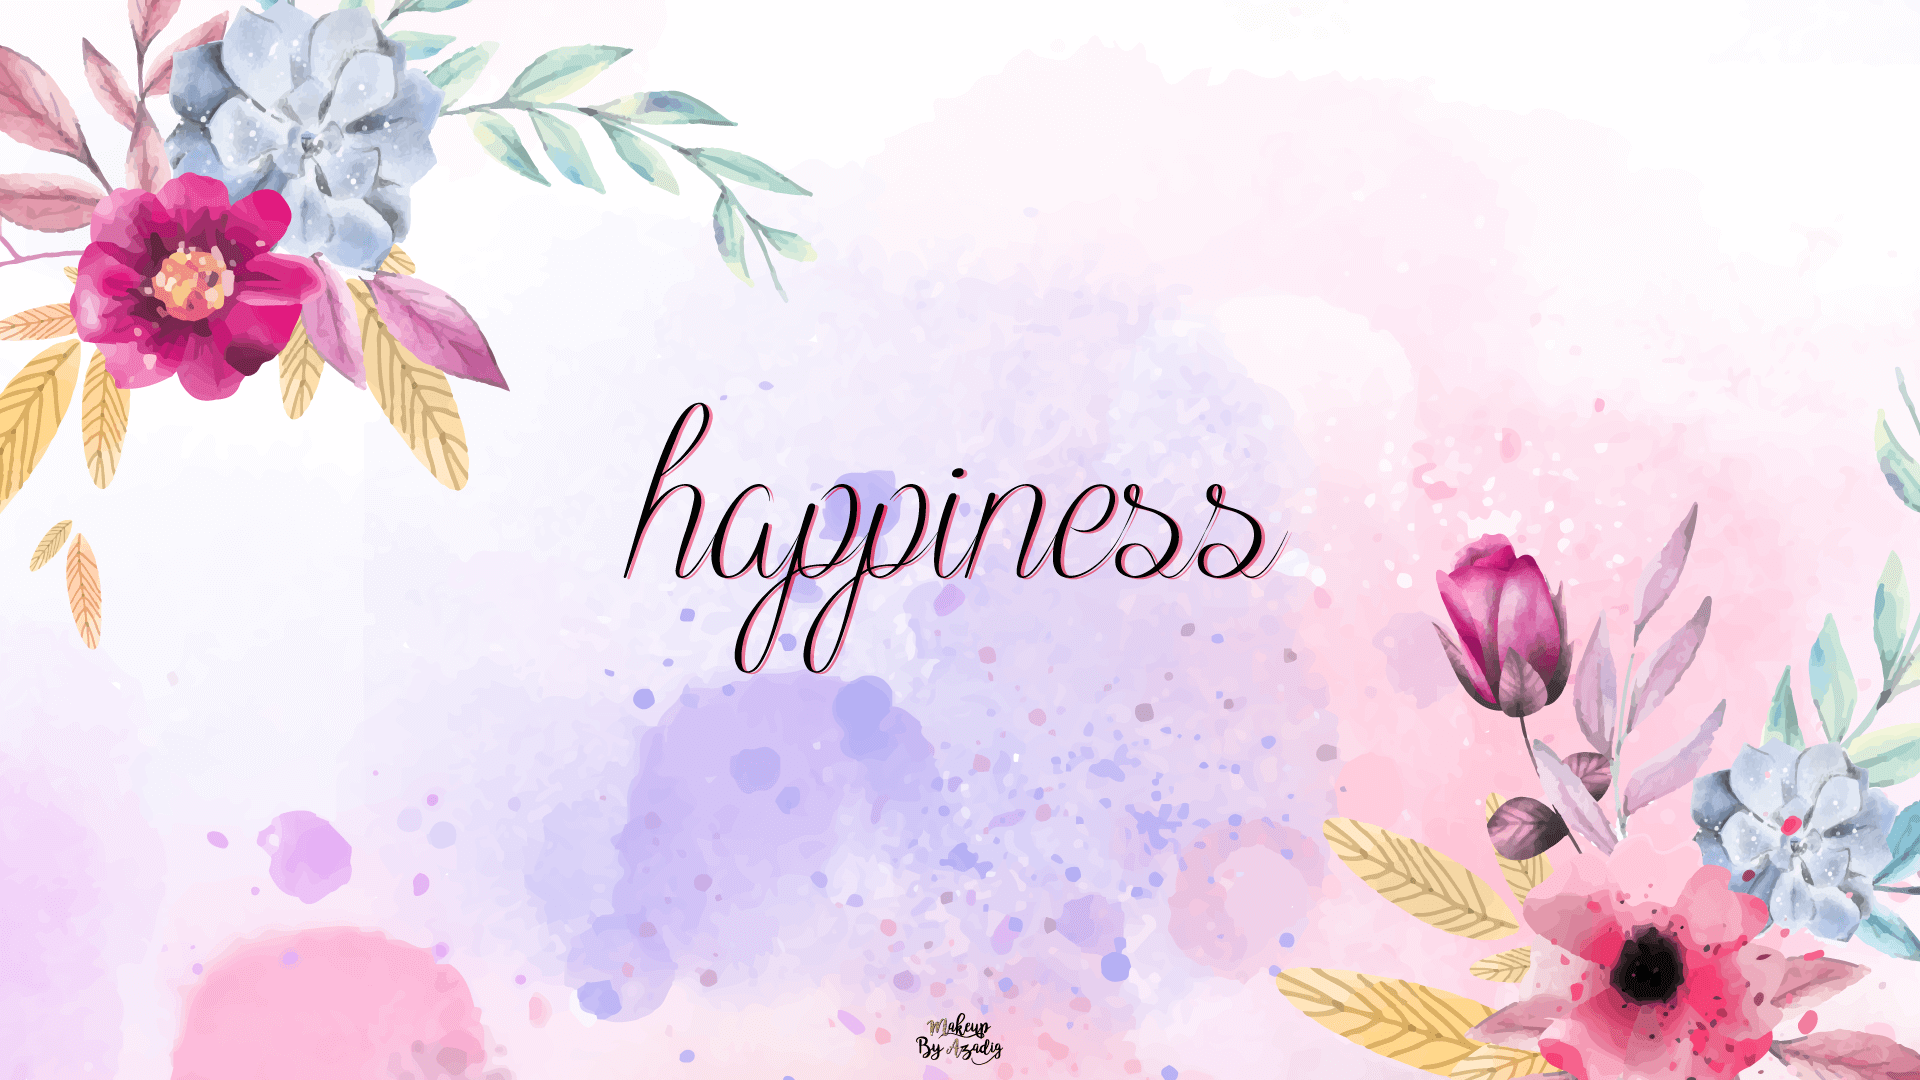 5 Fond D écran Happiness Flowers Wallpaper Makeupbyazadig